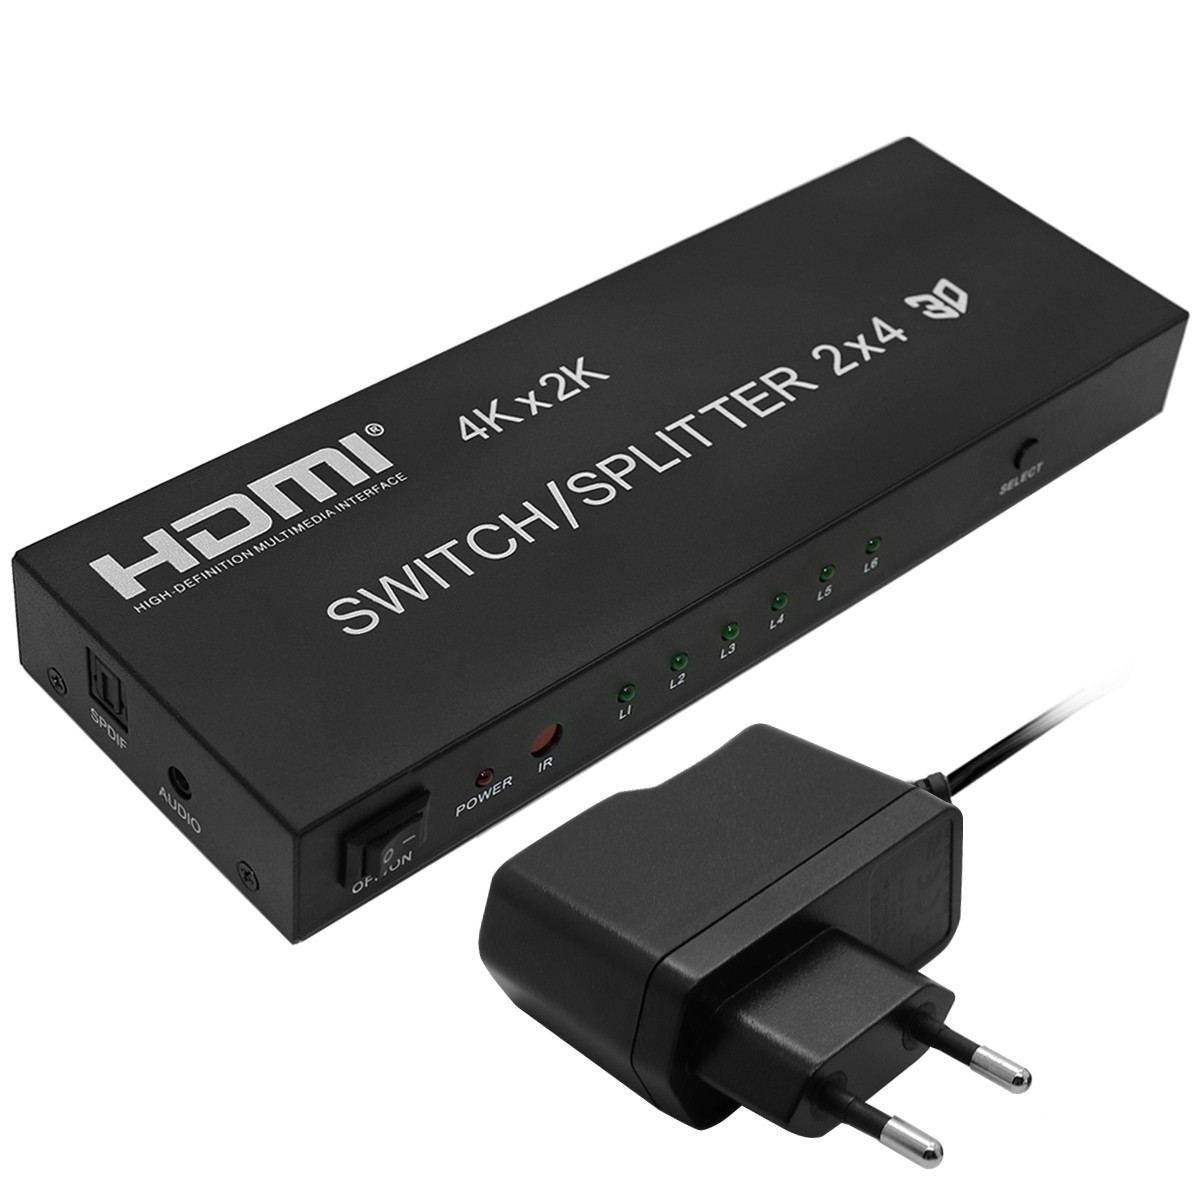 Full HD 1080P 3D 2x4 Matrix HDMI Video Switch Splitter Amplifier 1.4a 4K With Remote For DVD PS3 TV Box HDTV(China (Mainland))